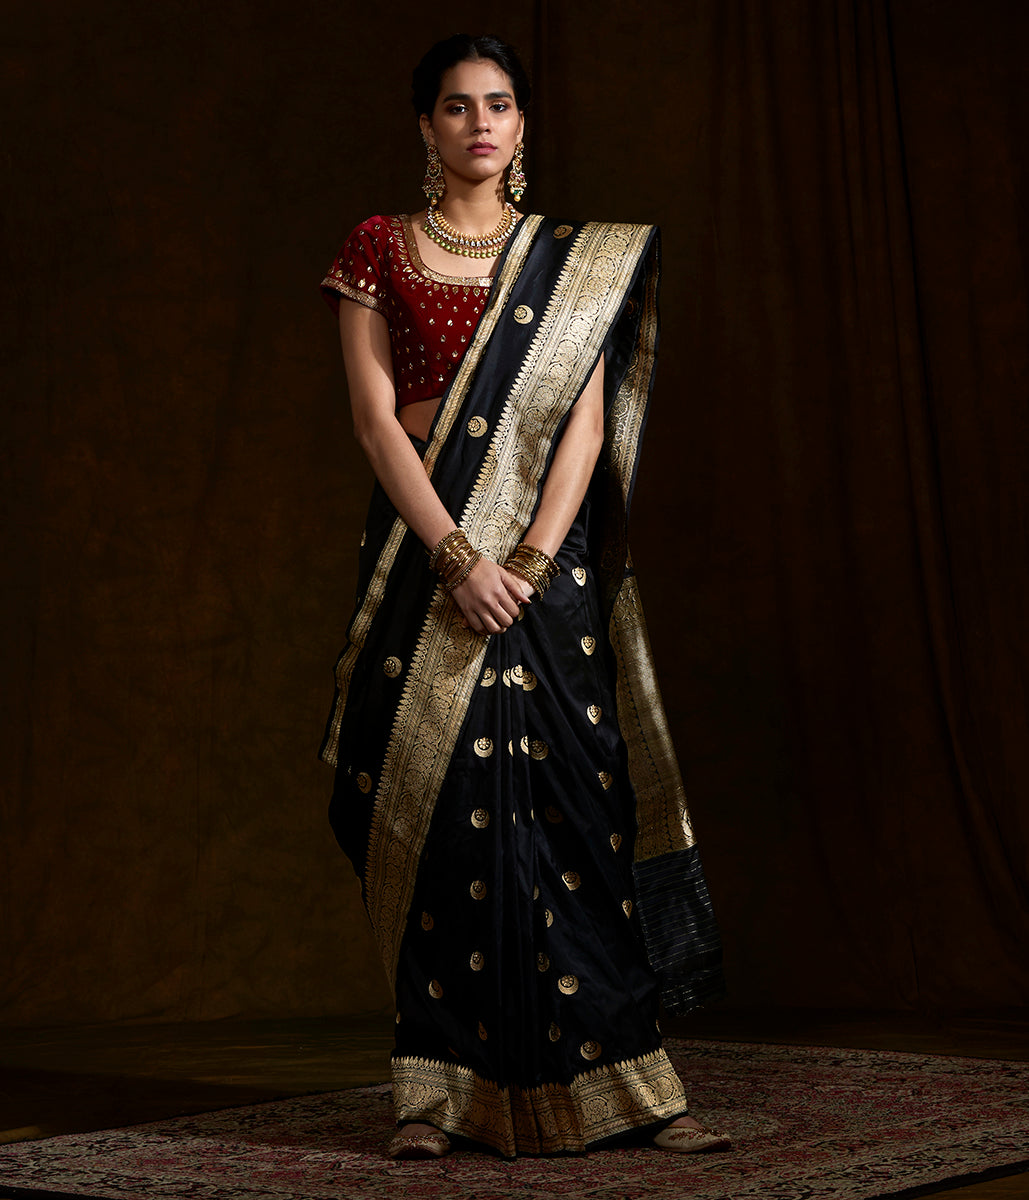 Black Kadhwa banarasi saree with lion motif on pallu